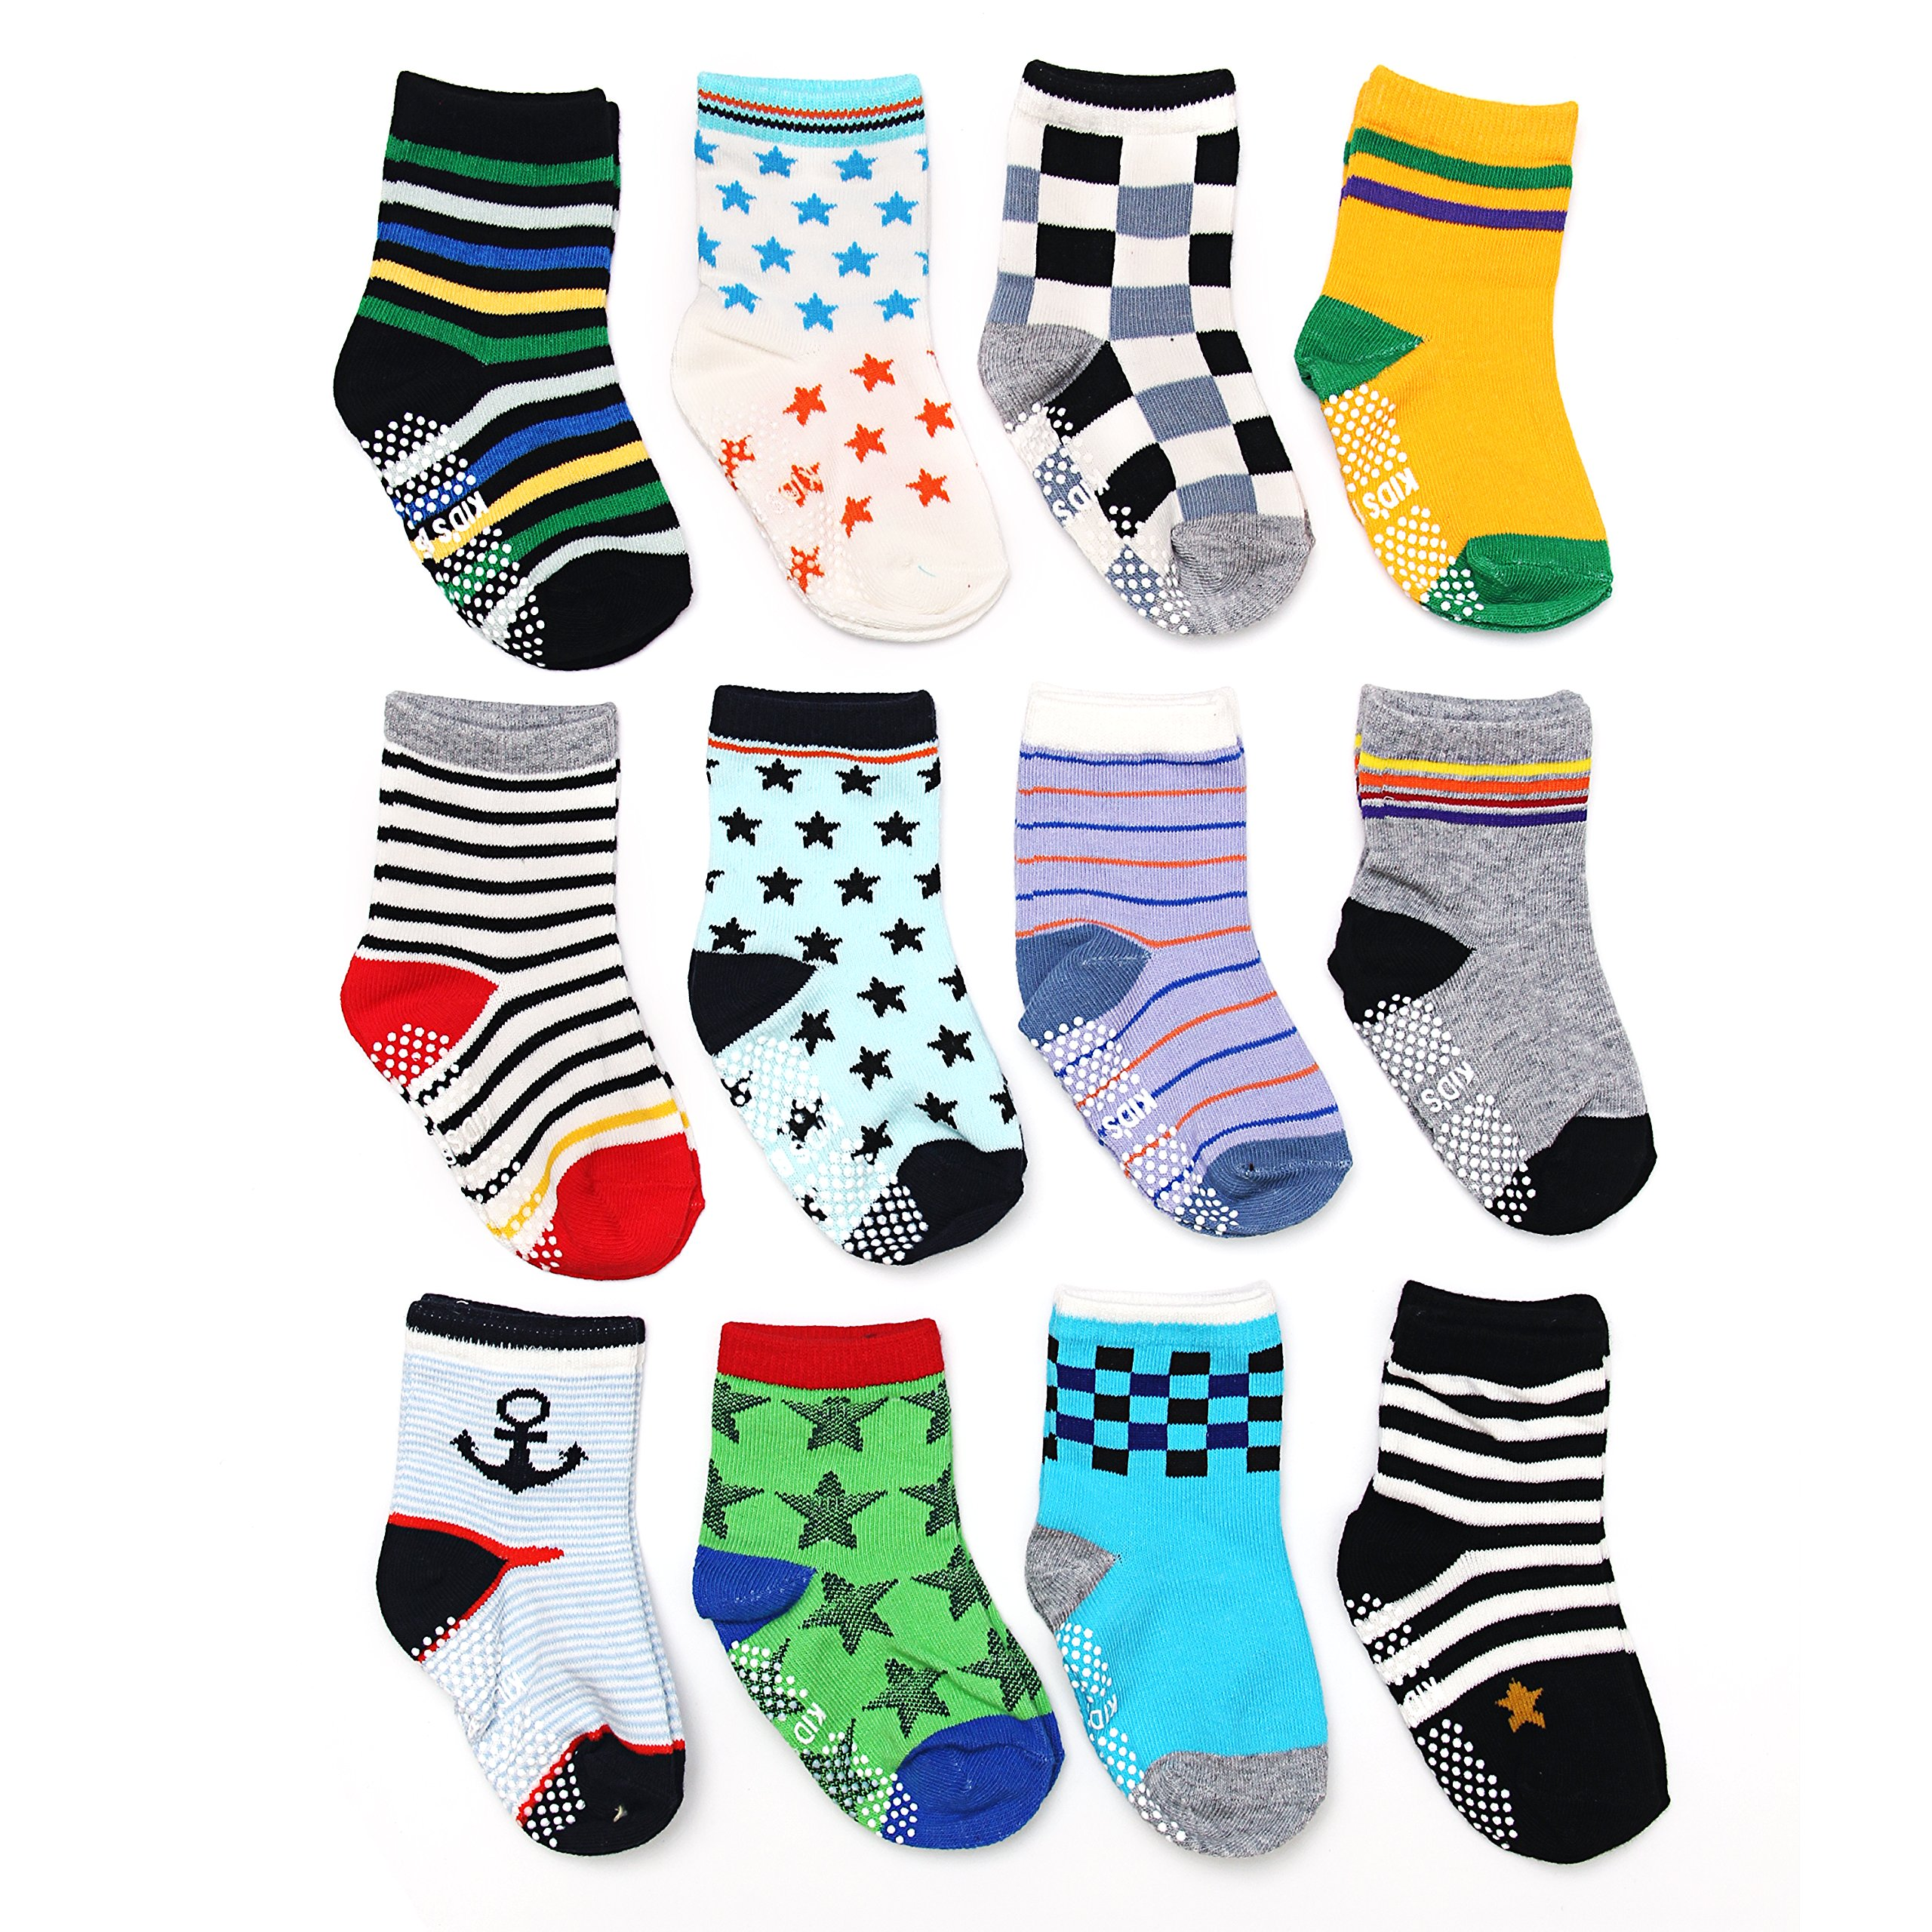 Shoppewatch 12 Pairs Baby Toddler Socks With Grips Anti